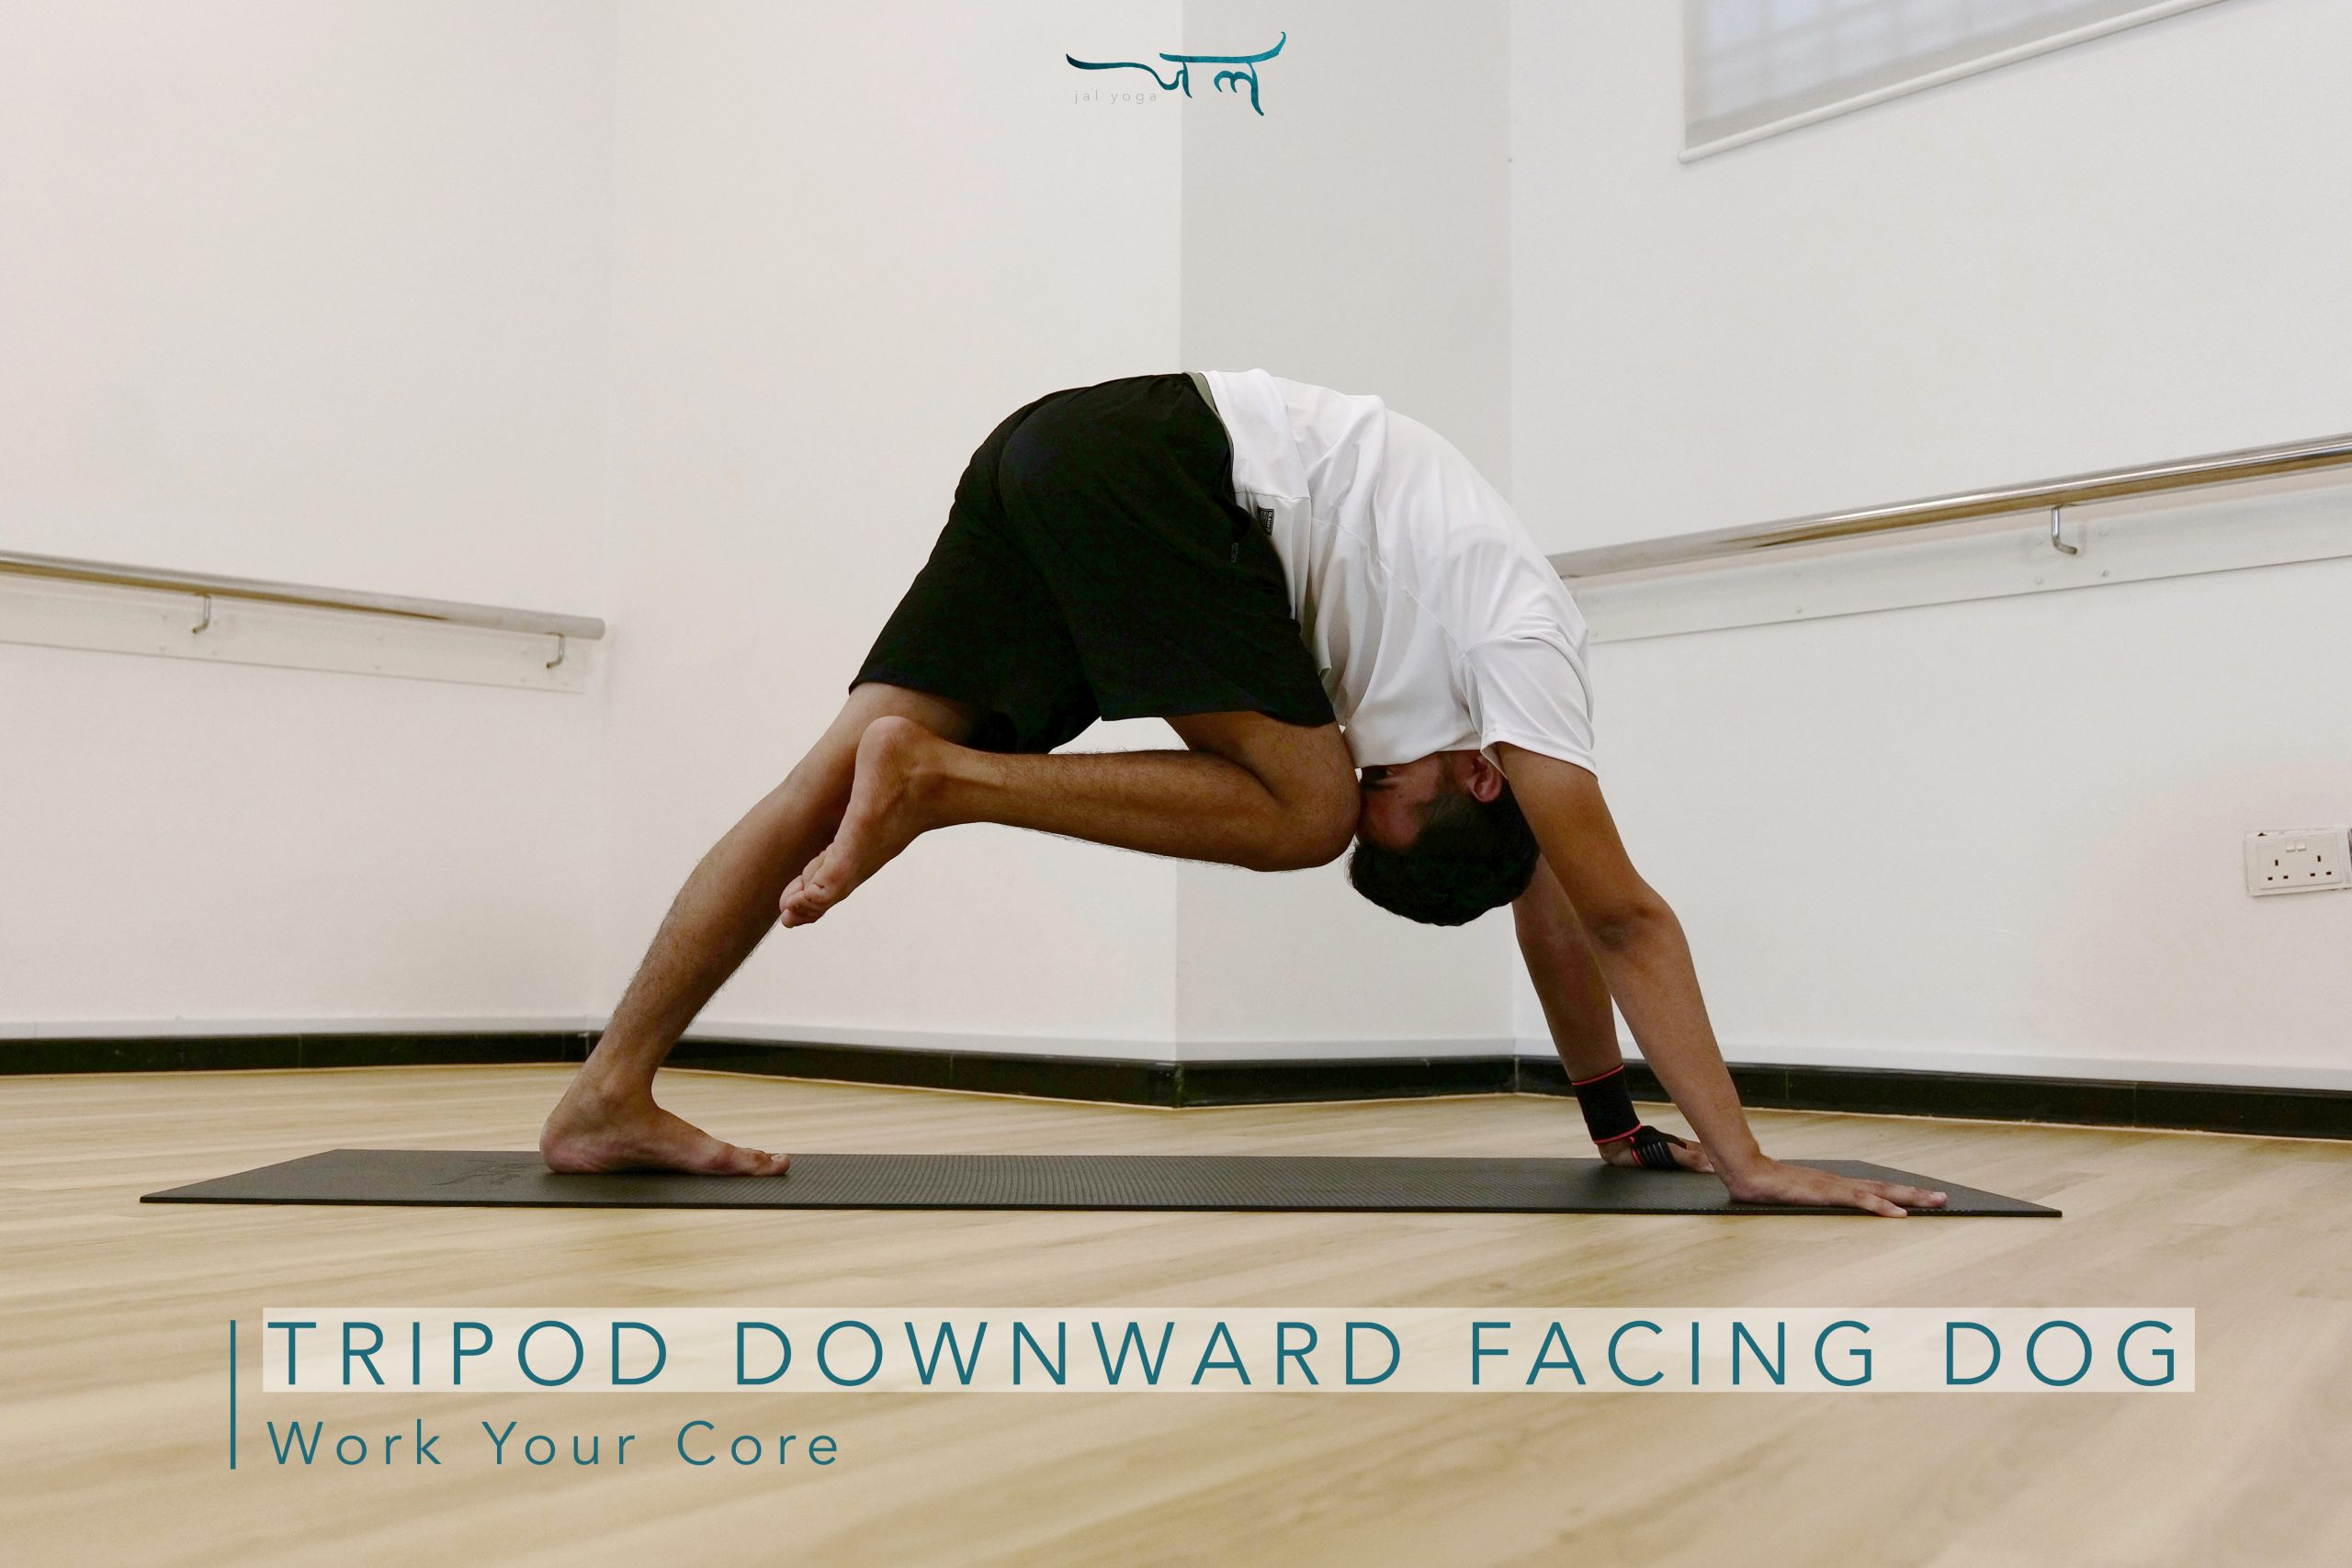 Tripod Downward Dog Core Workout at Home To Flatten Your Belly